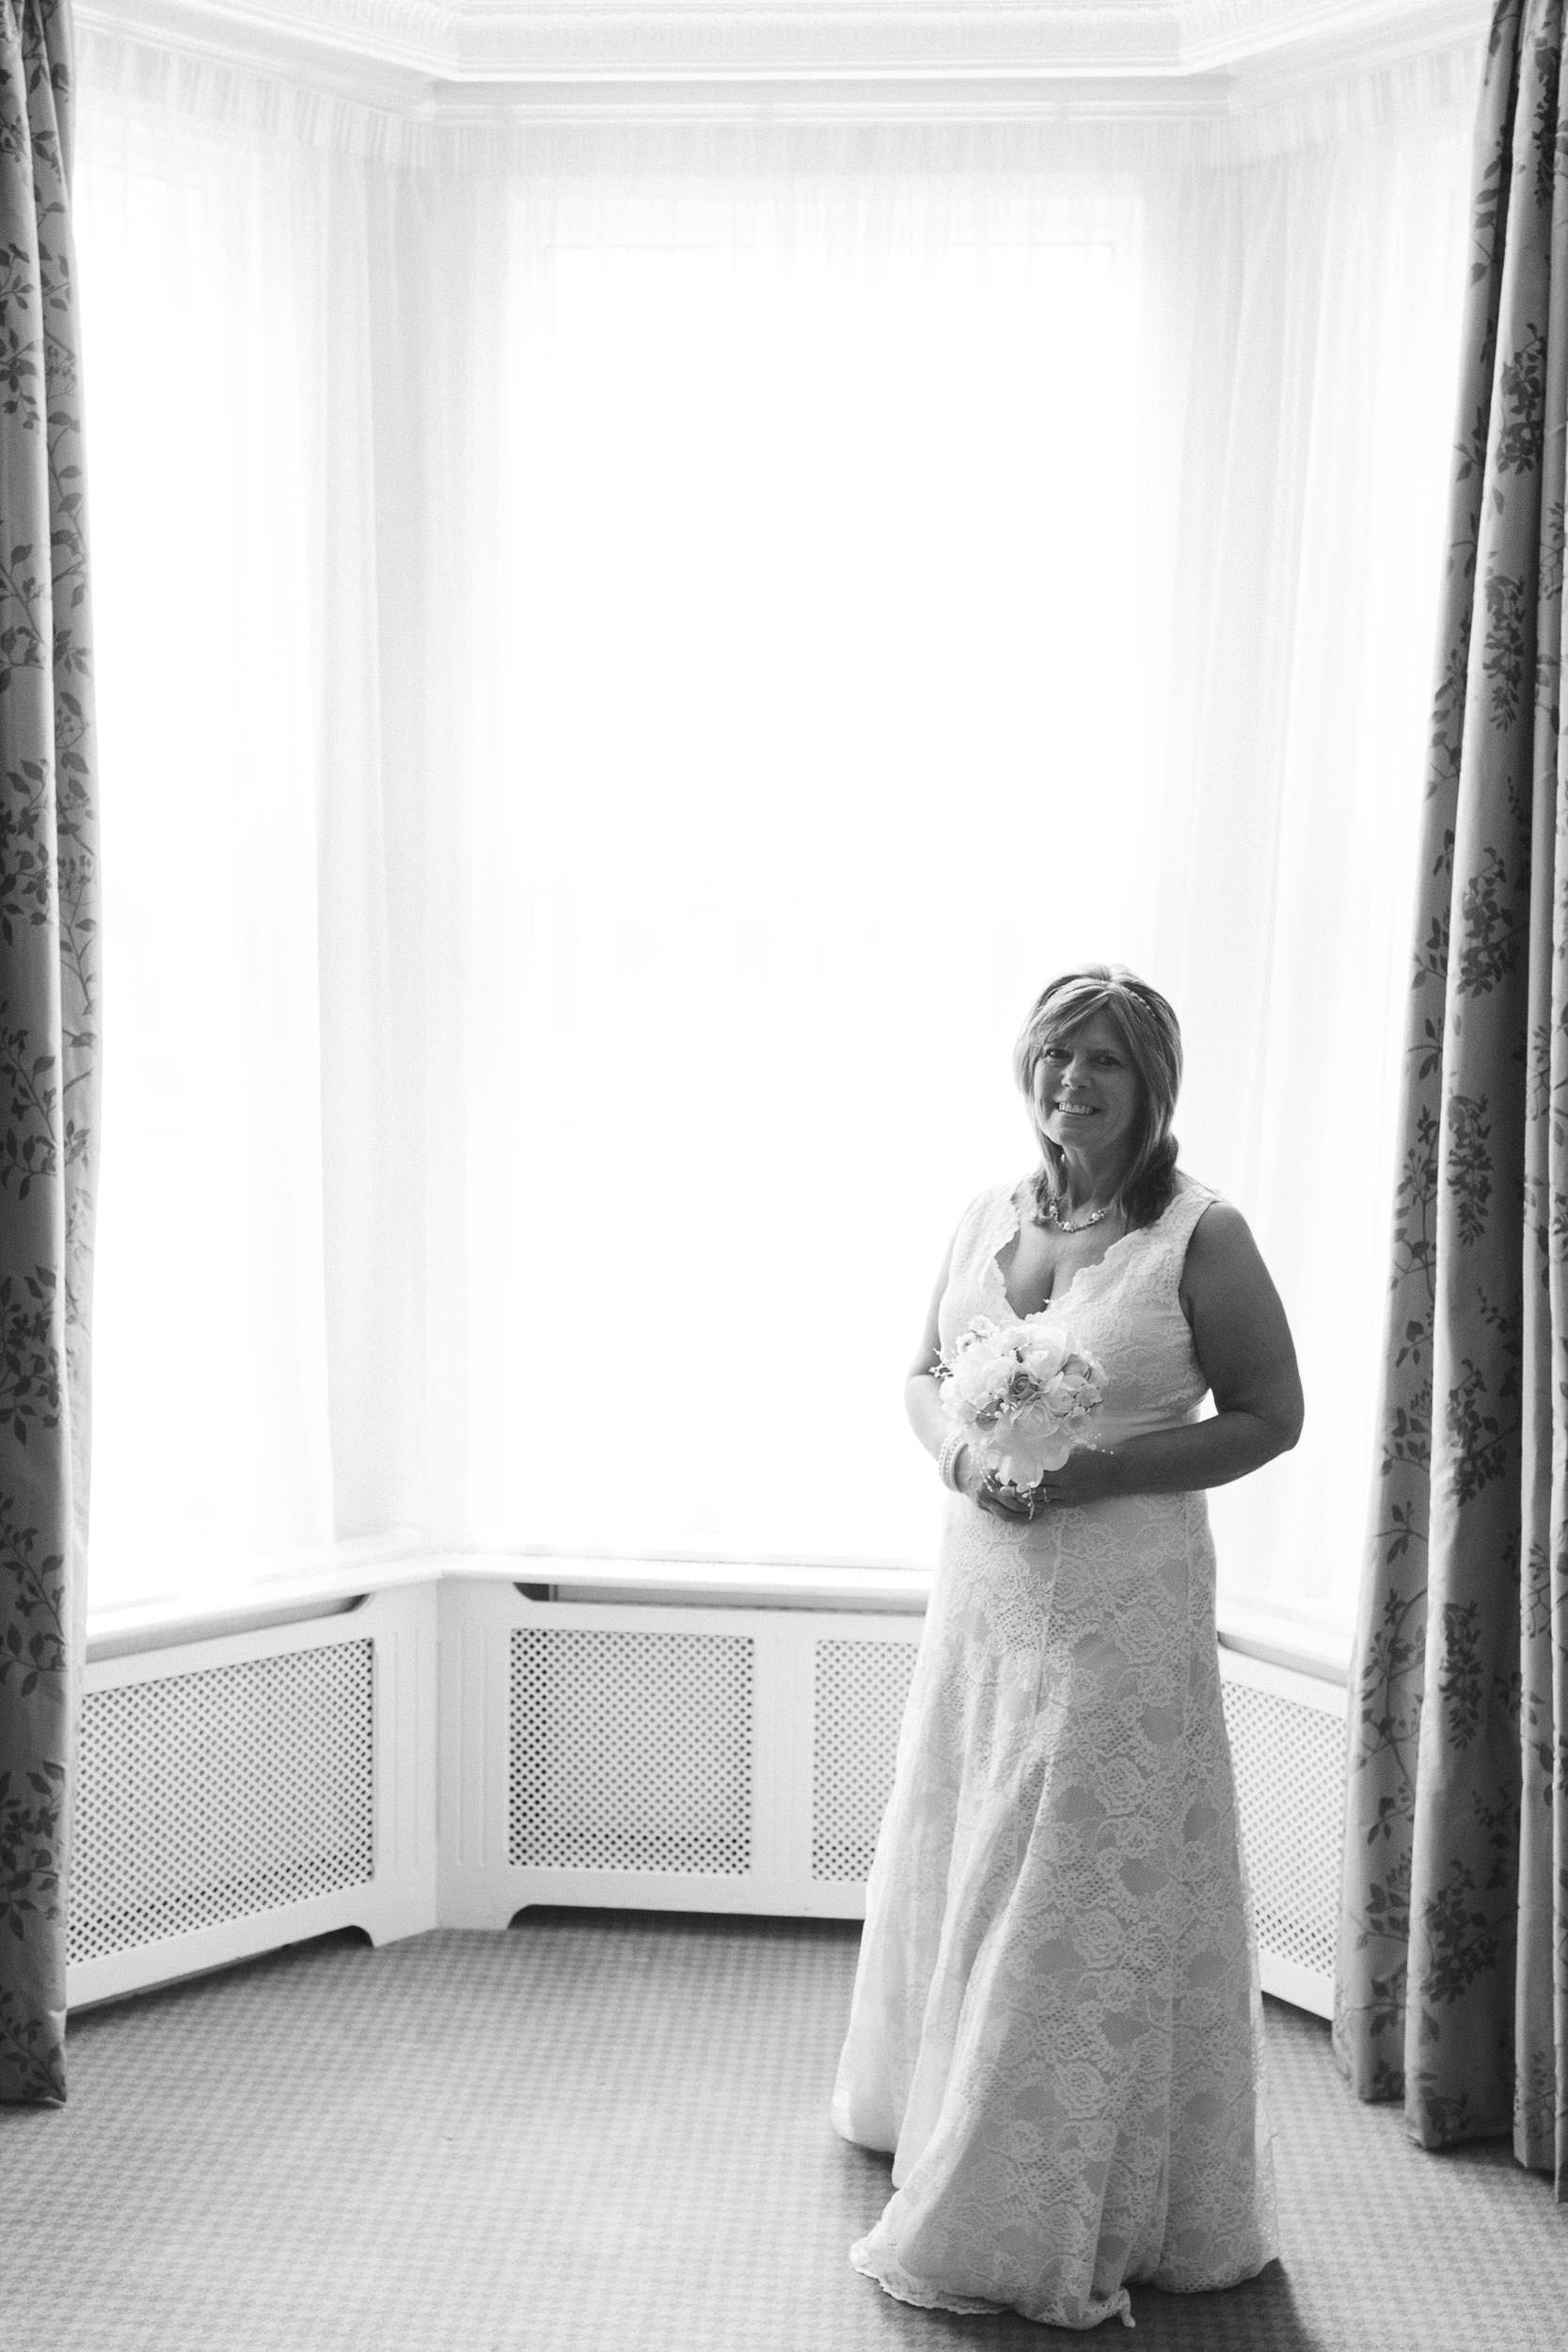 A black and white photo of the bride standing in front of a tall window